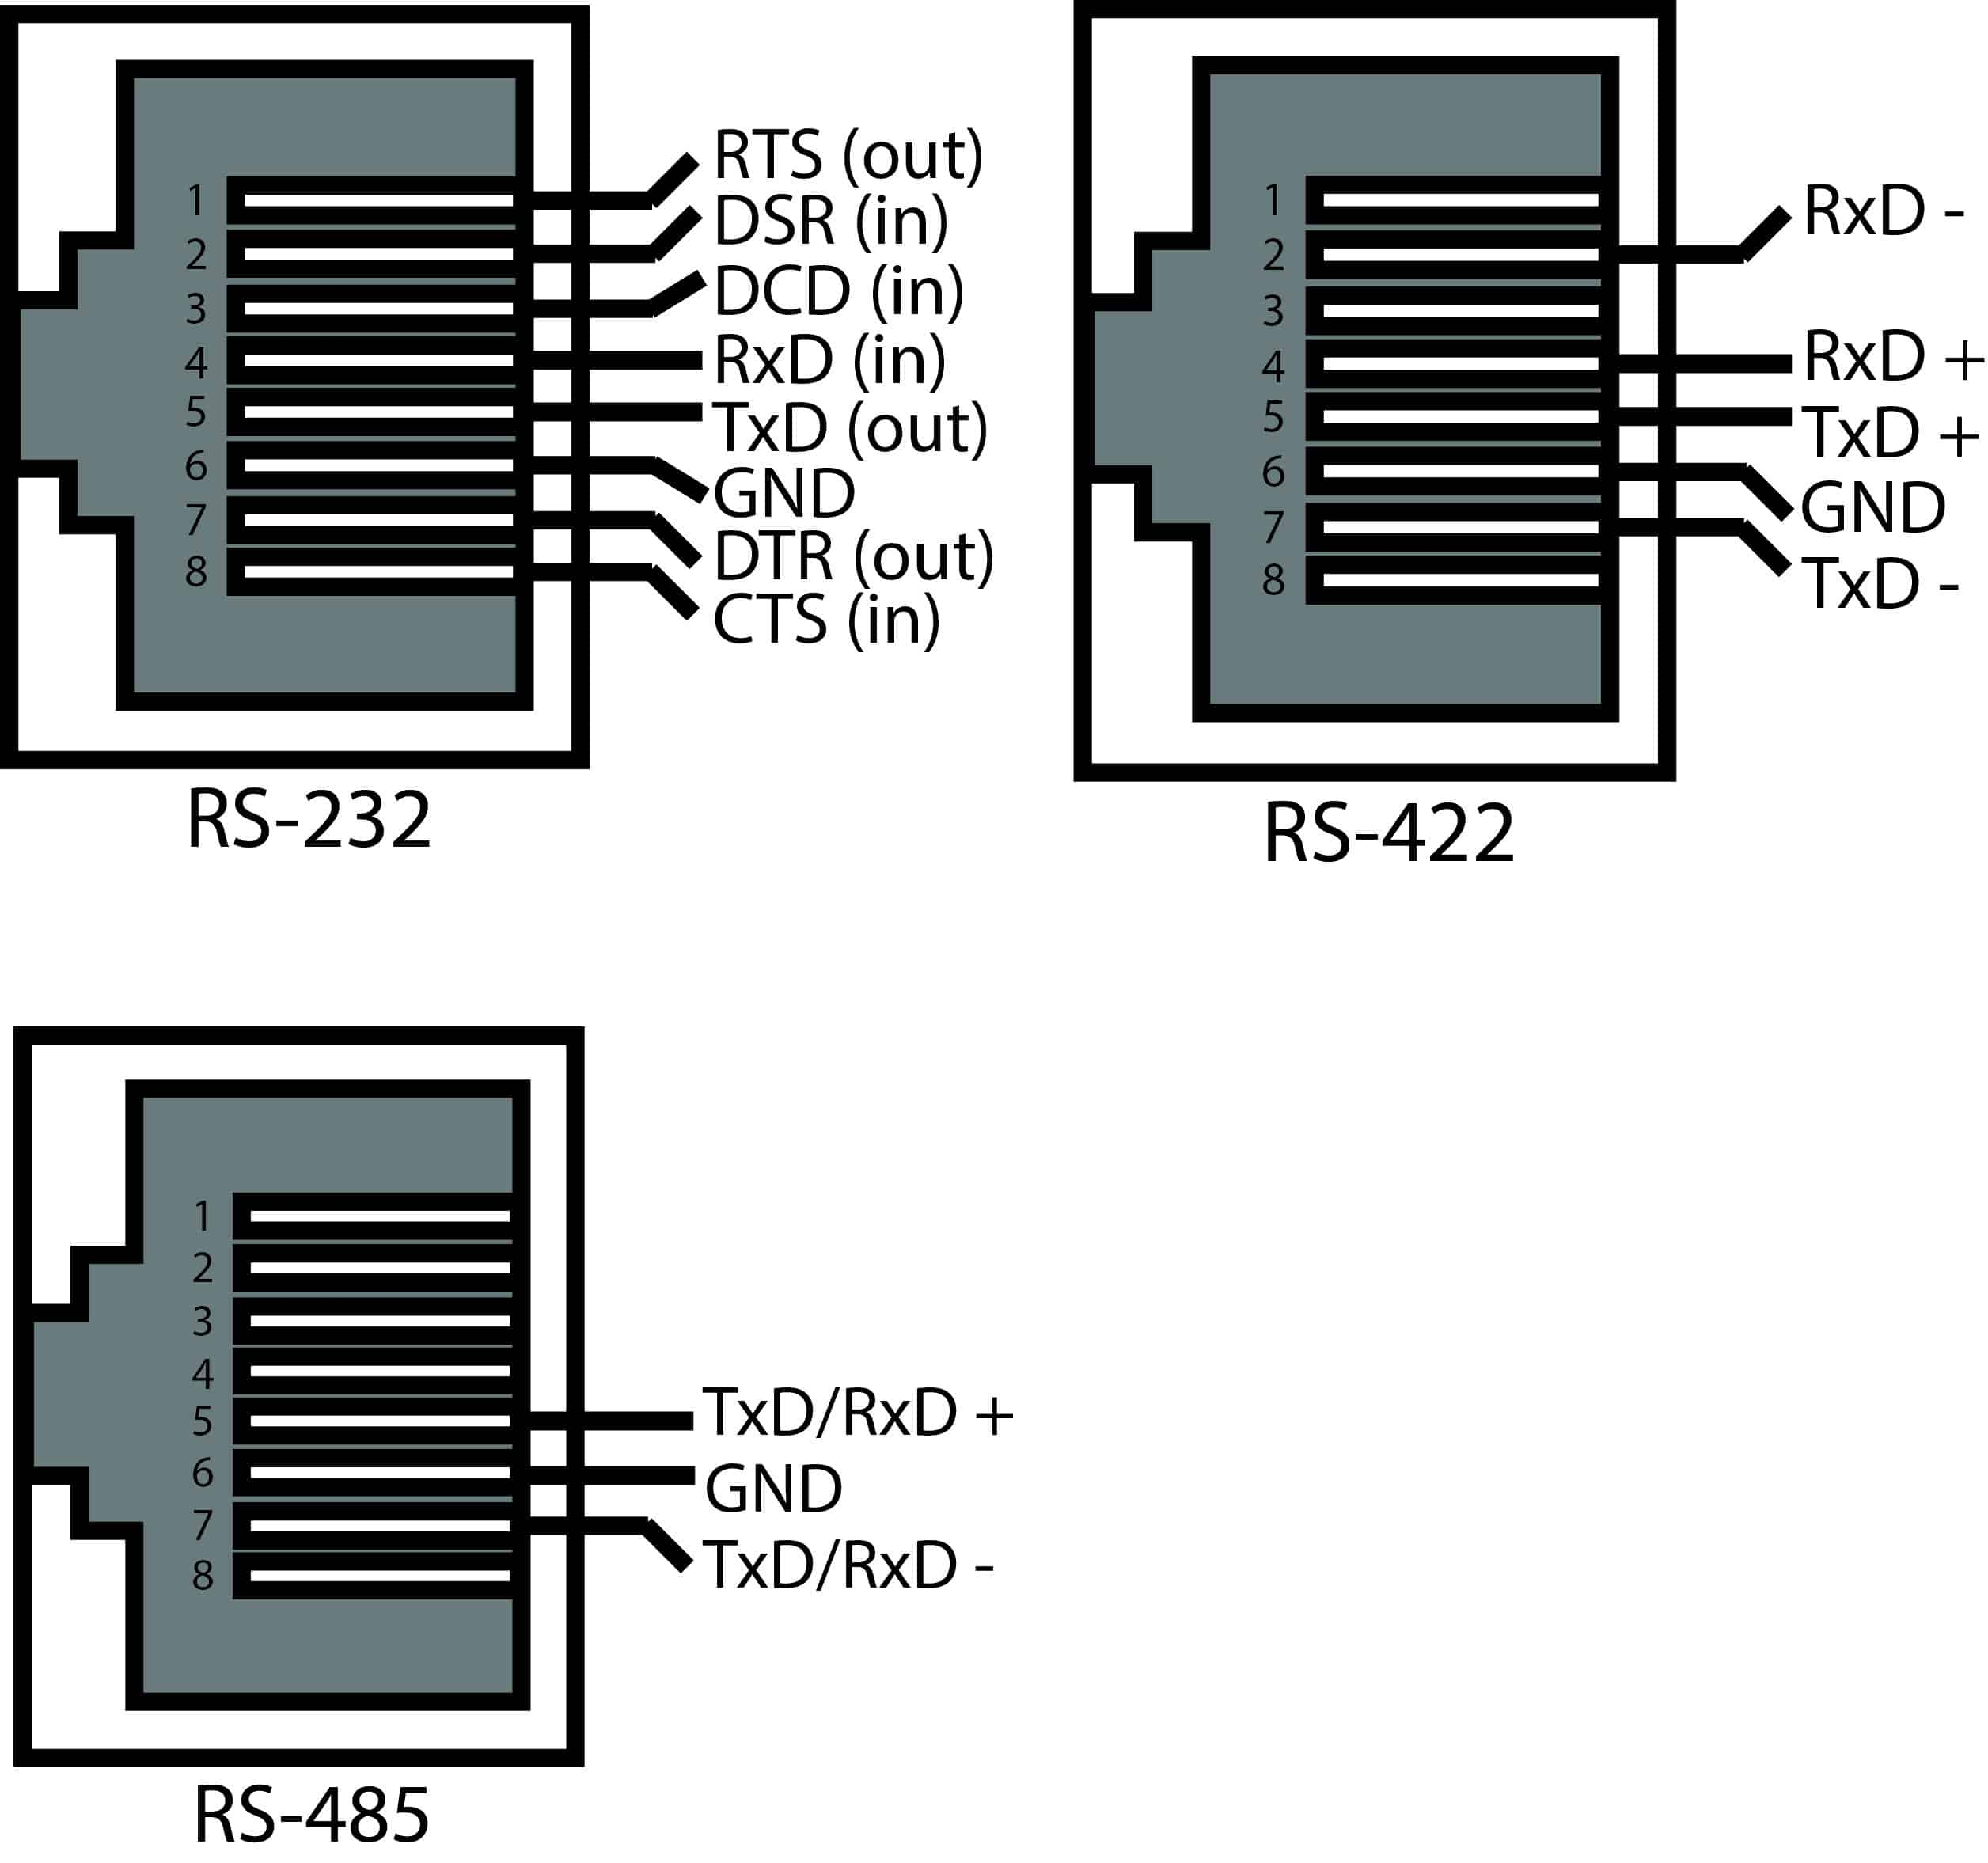 Rj45 Wiring Diagram Loopback 28 Images Straight Comtrol Devicemaster Lt16 Source Rs232422485 Dmlt Connector At View Pinout Diagrams